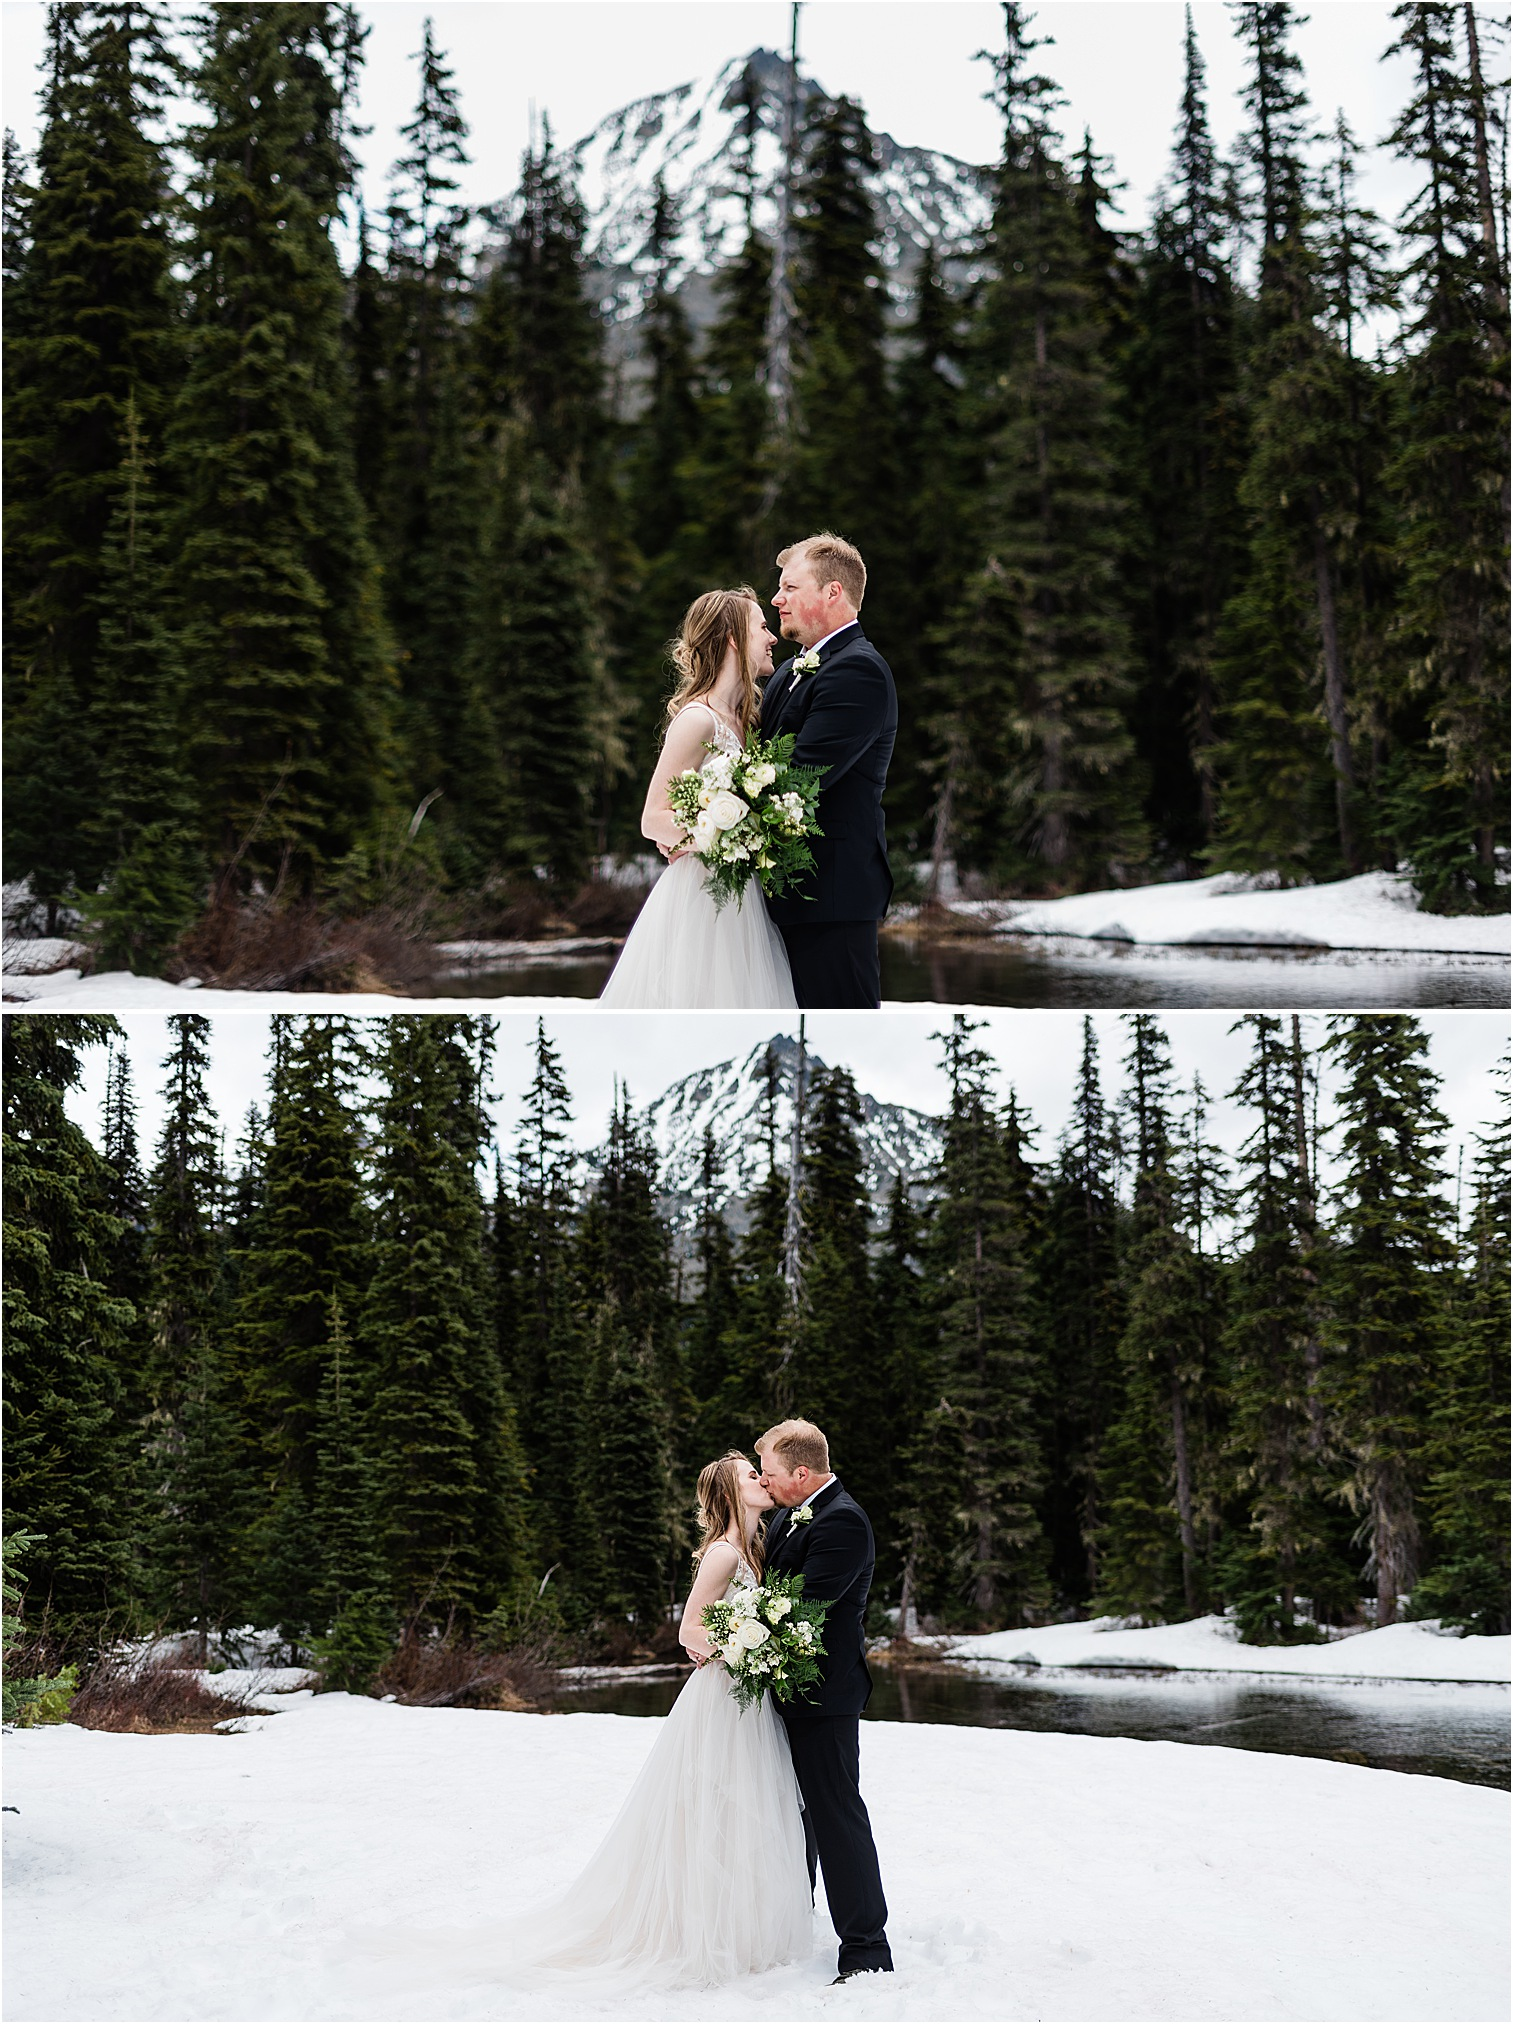 Hope & Steven admiring a quiet, wintry lake during their Adventure Wedding in the North Cascades. Image by Forthright Photo, Seattle Wedding & Elopement Photographers